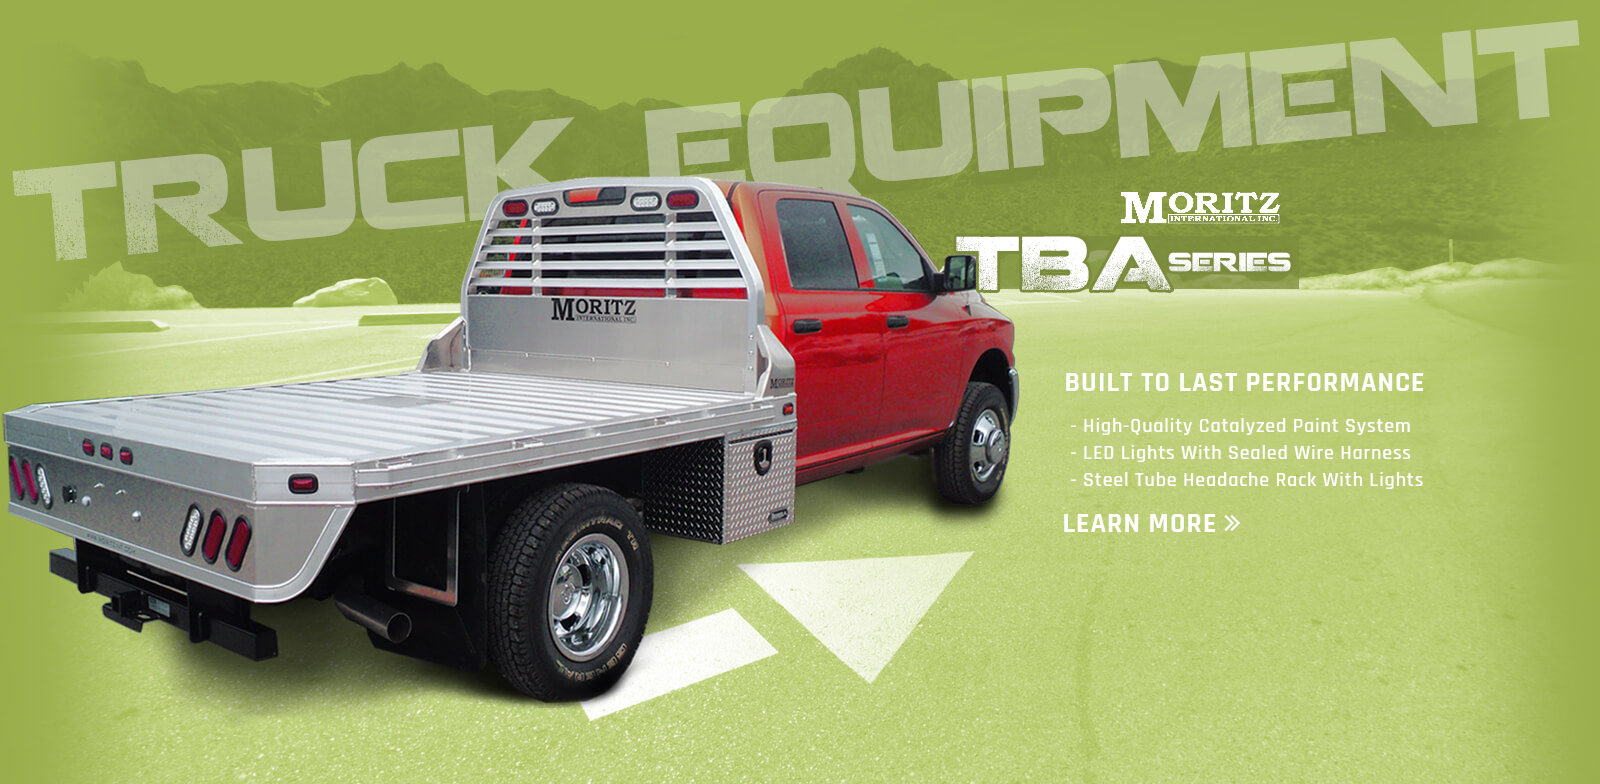 hight resolution of all truck equipment o reilly equipment flatbed trailers dump trailers and truck beds in cleveland oh